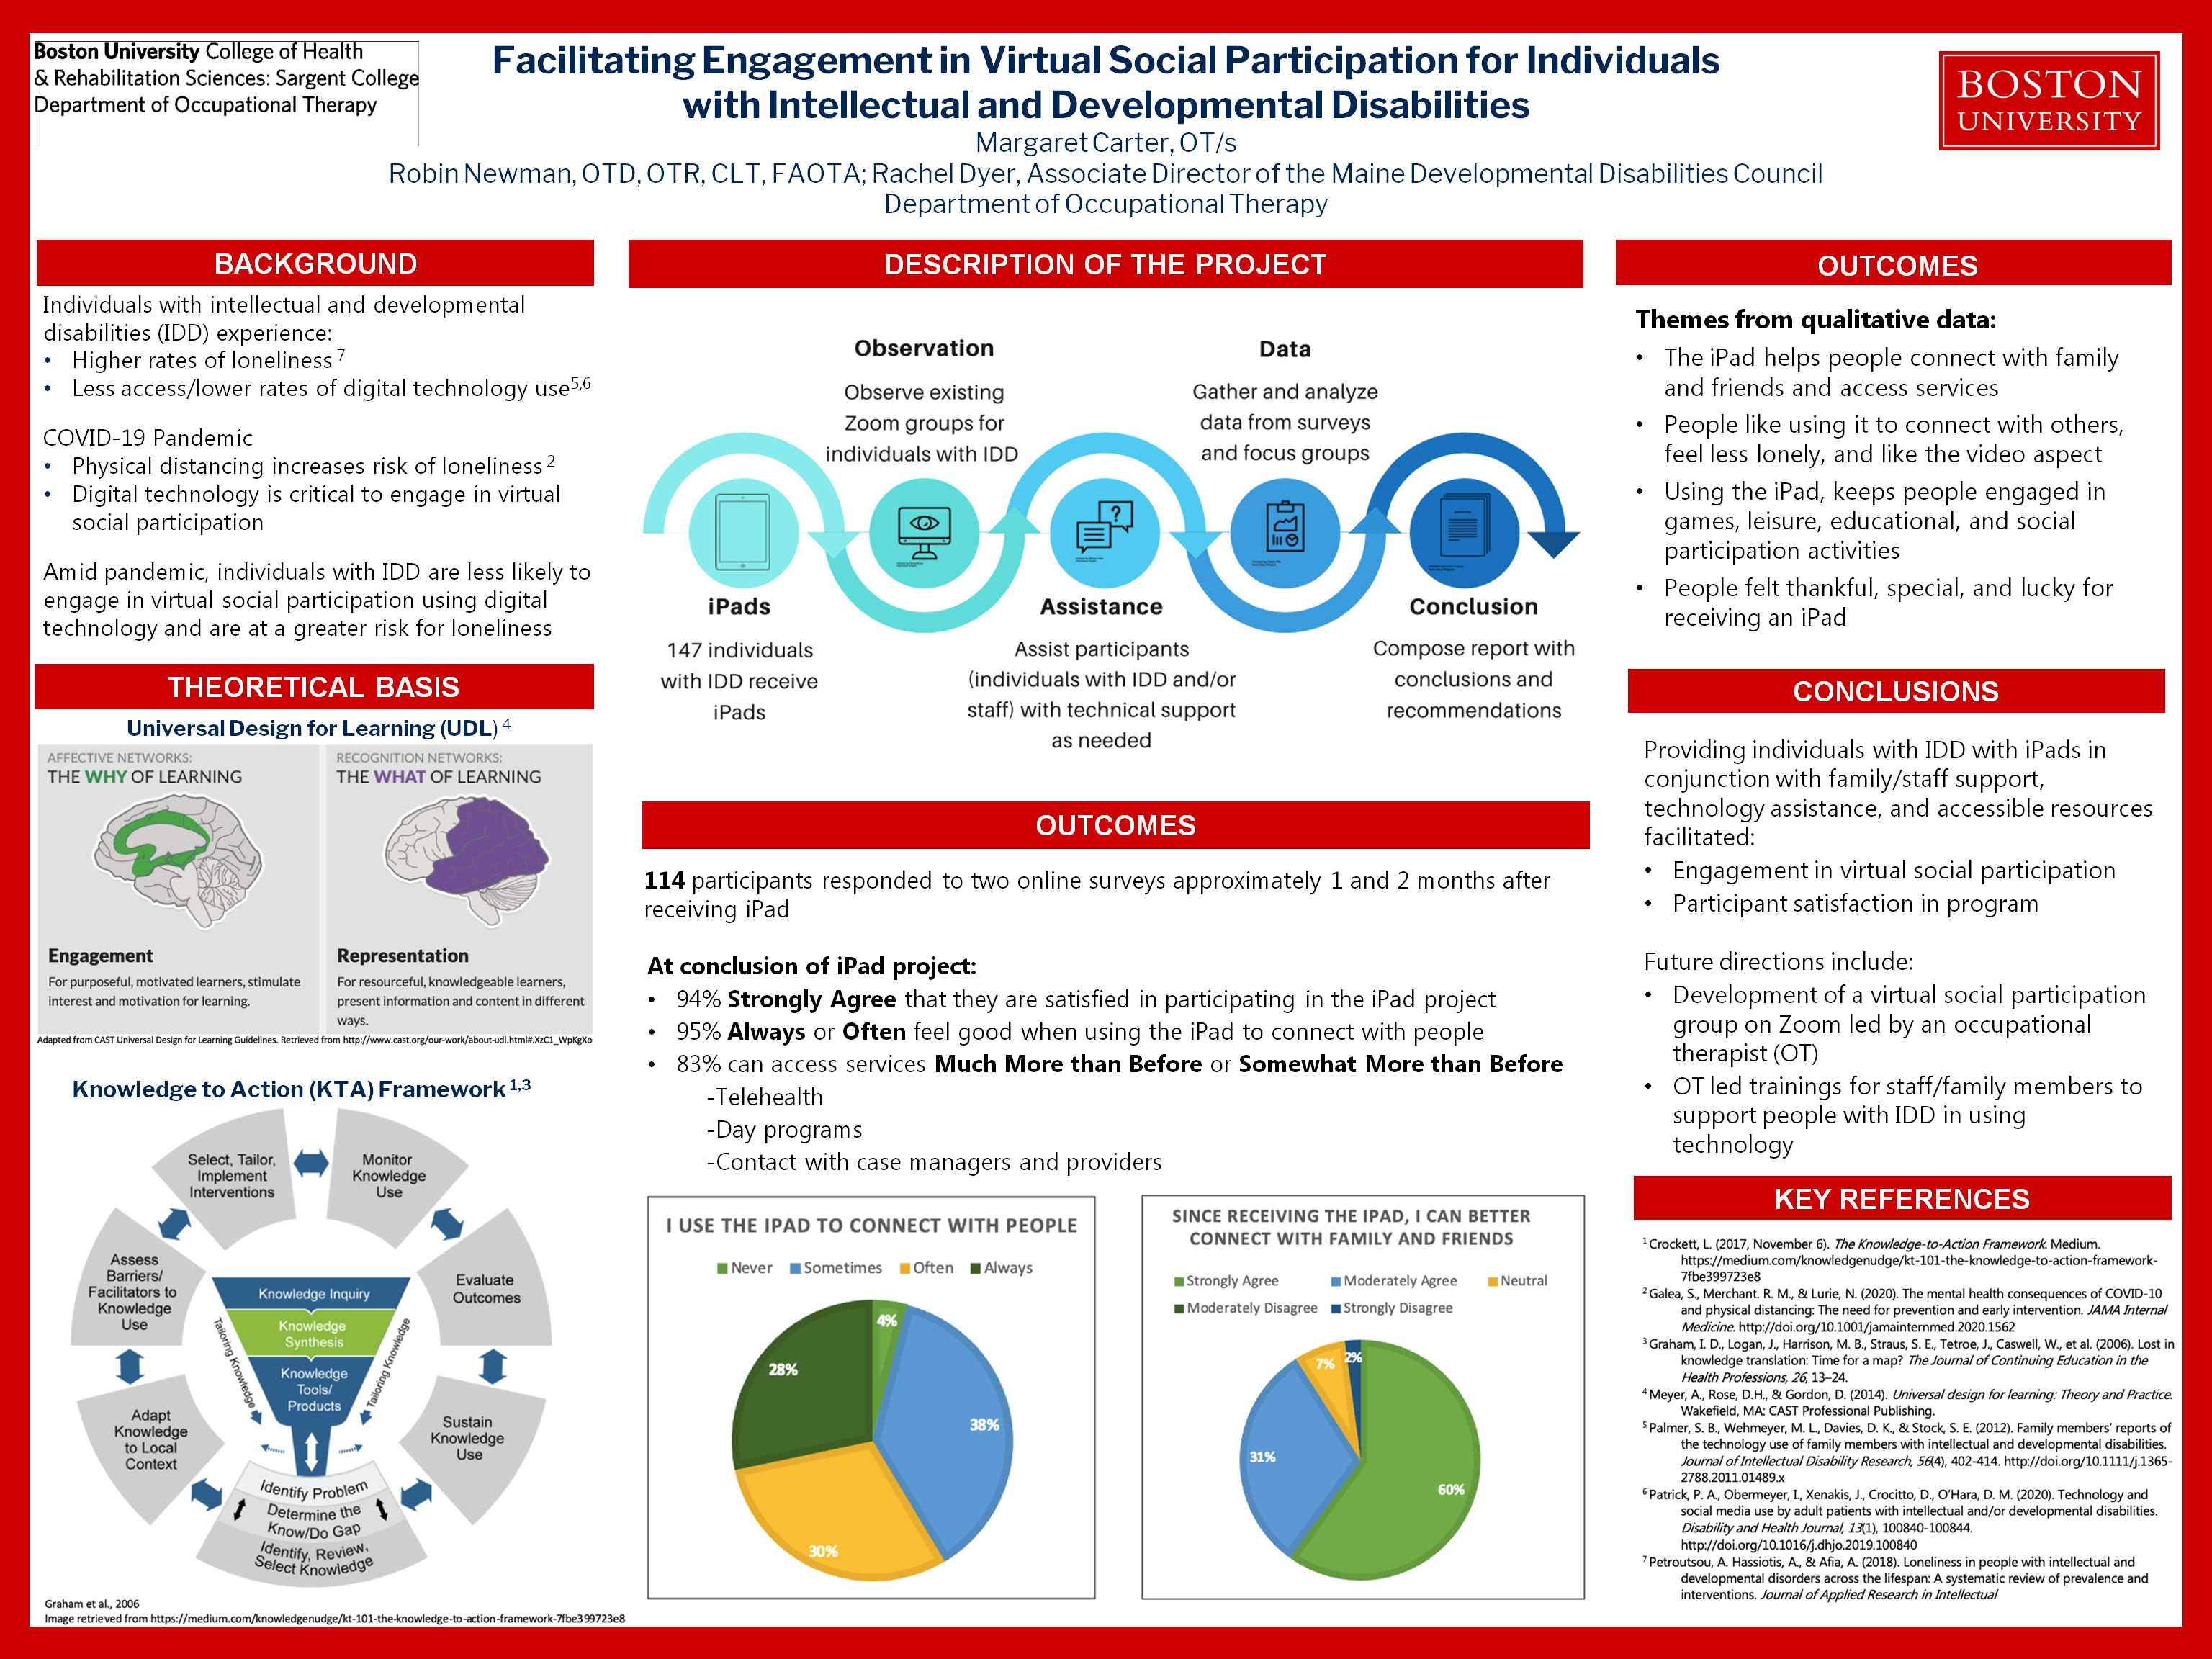 Poster of DD Access to Tech Findings - text below